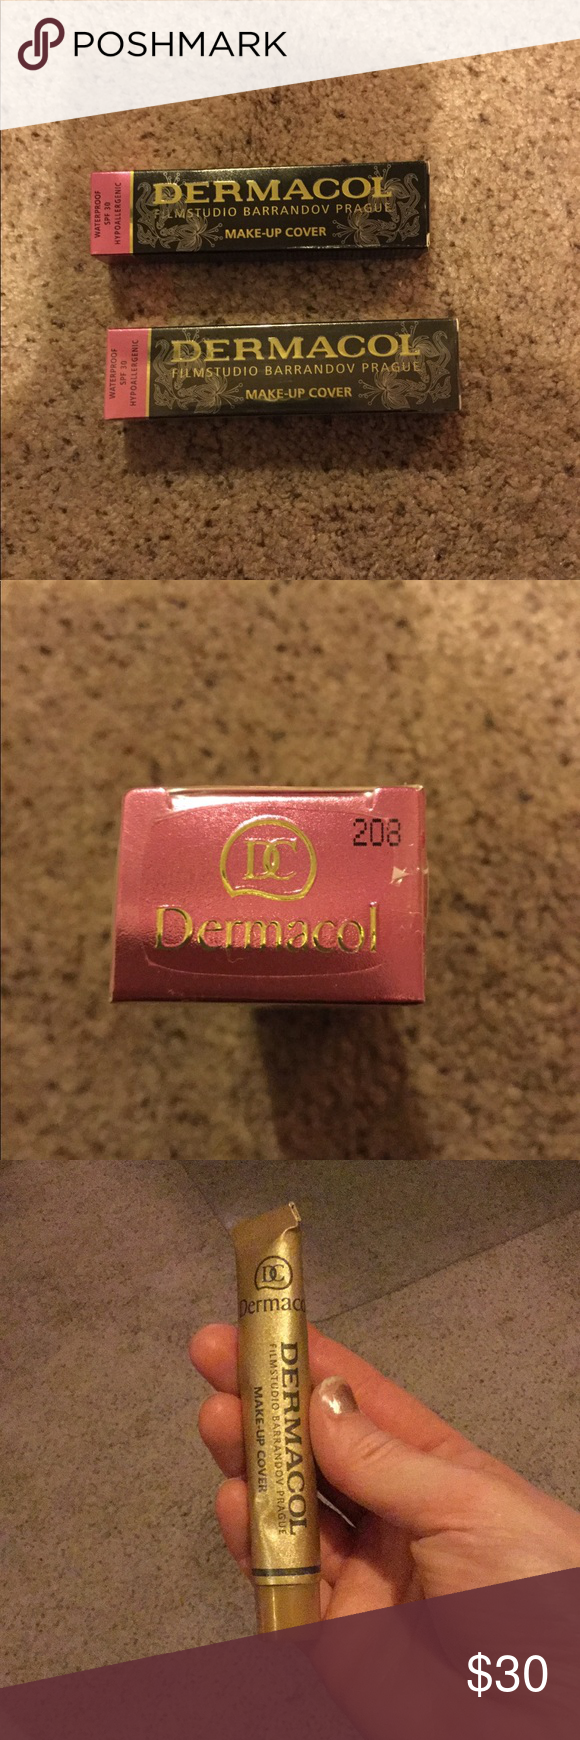 DERMACOL Makeup Cover 208 NWT Dermacol make up cover